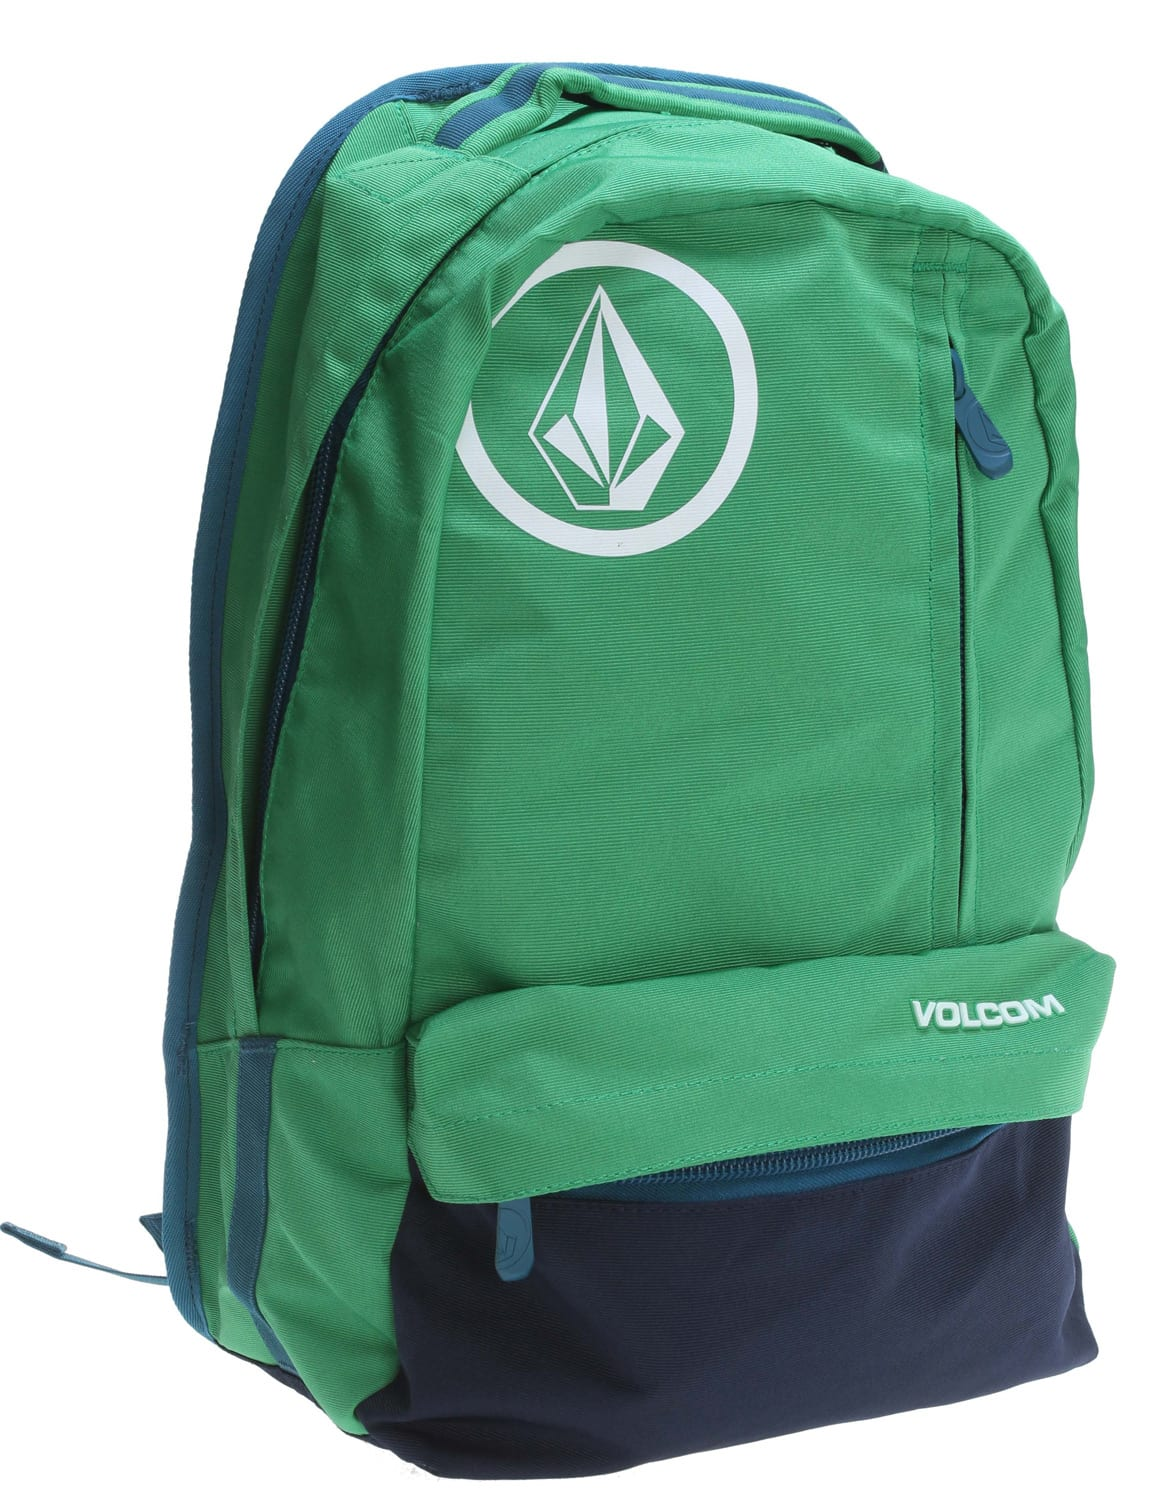 Volcom Basis Solid Polyester Backpack Green 18L